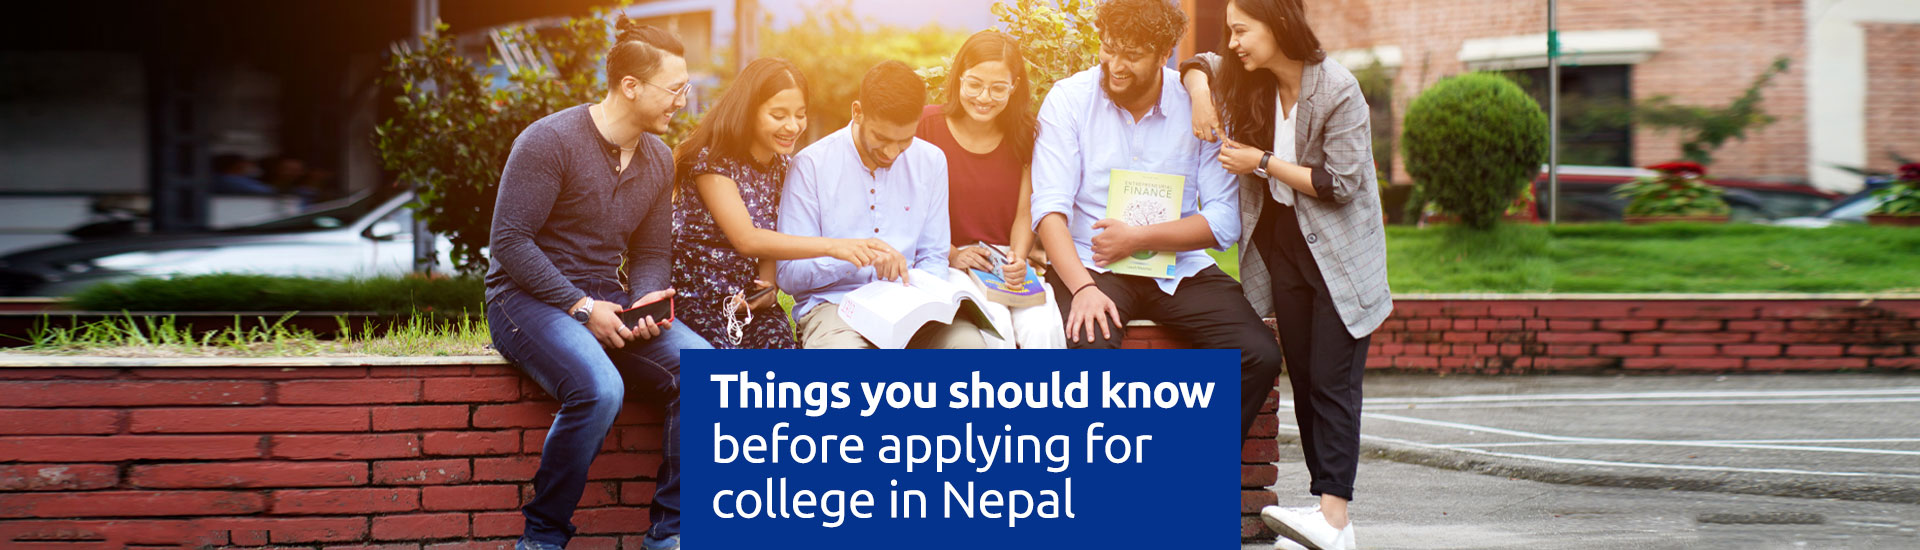 Things you should know before applying for college